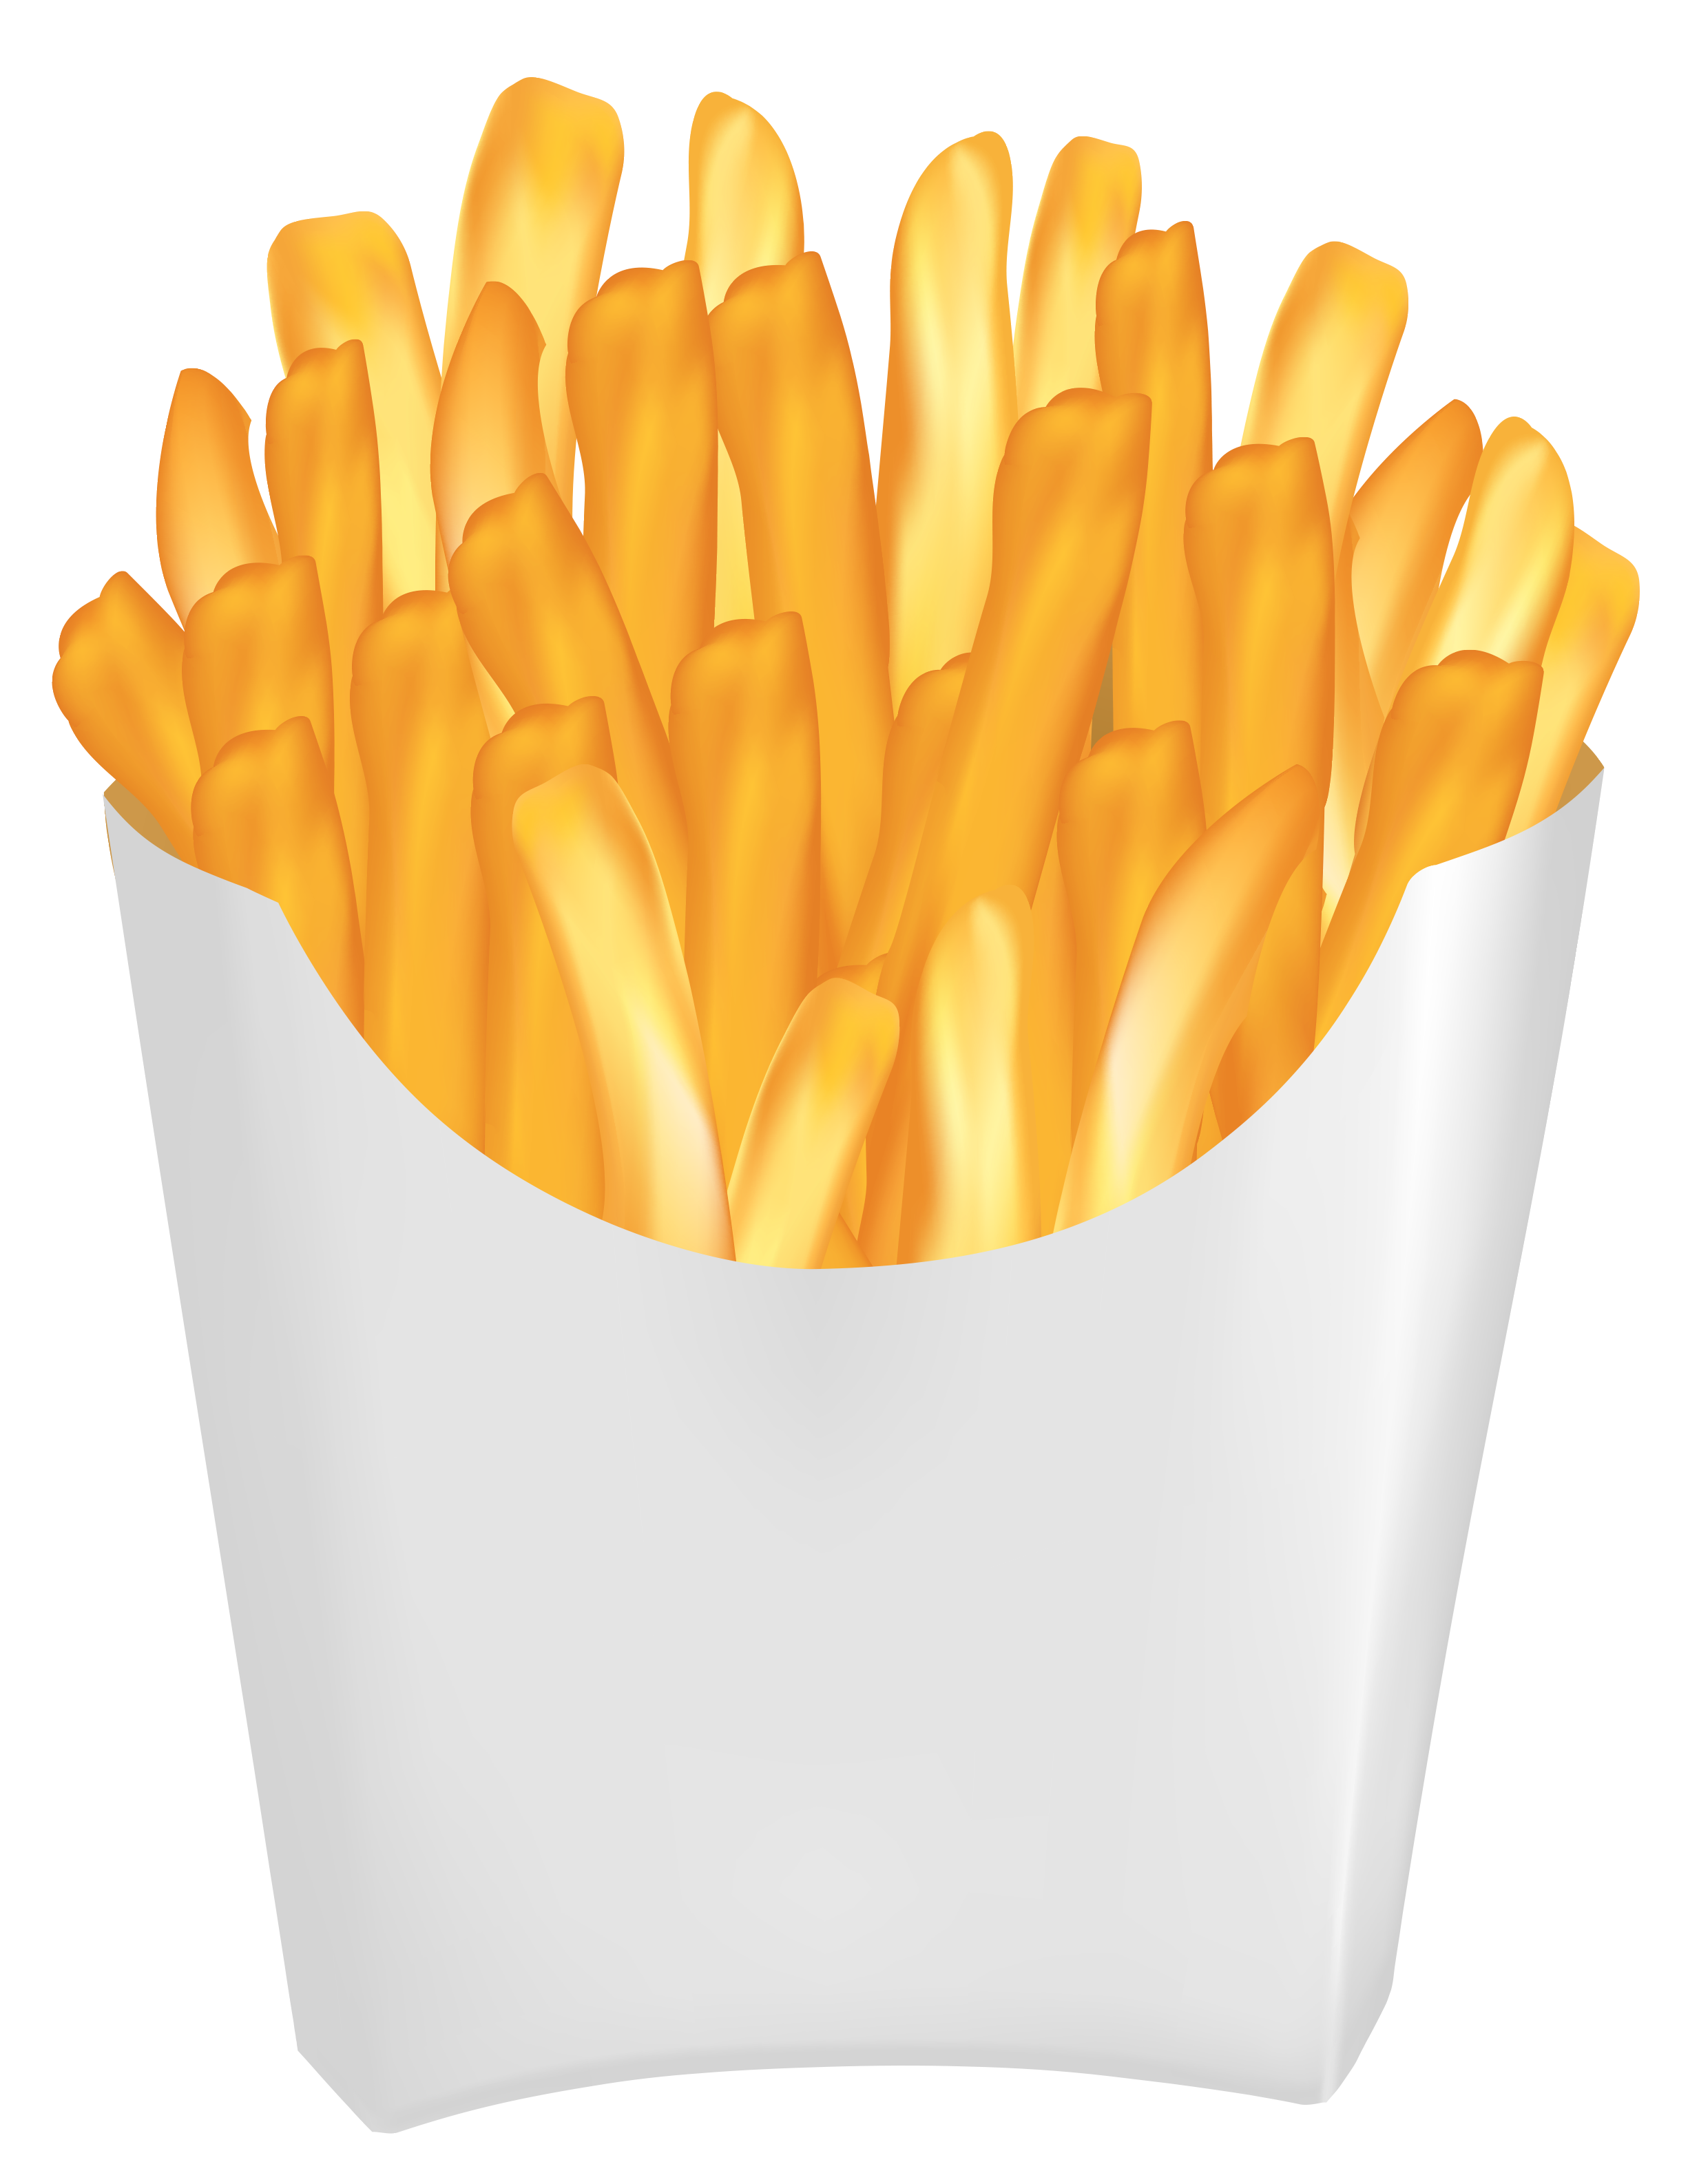 Fries clipart large. Png image purepng free